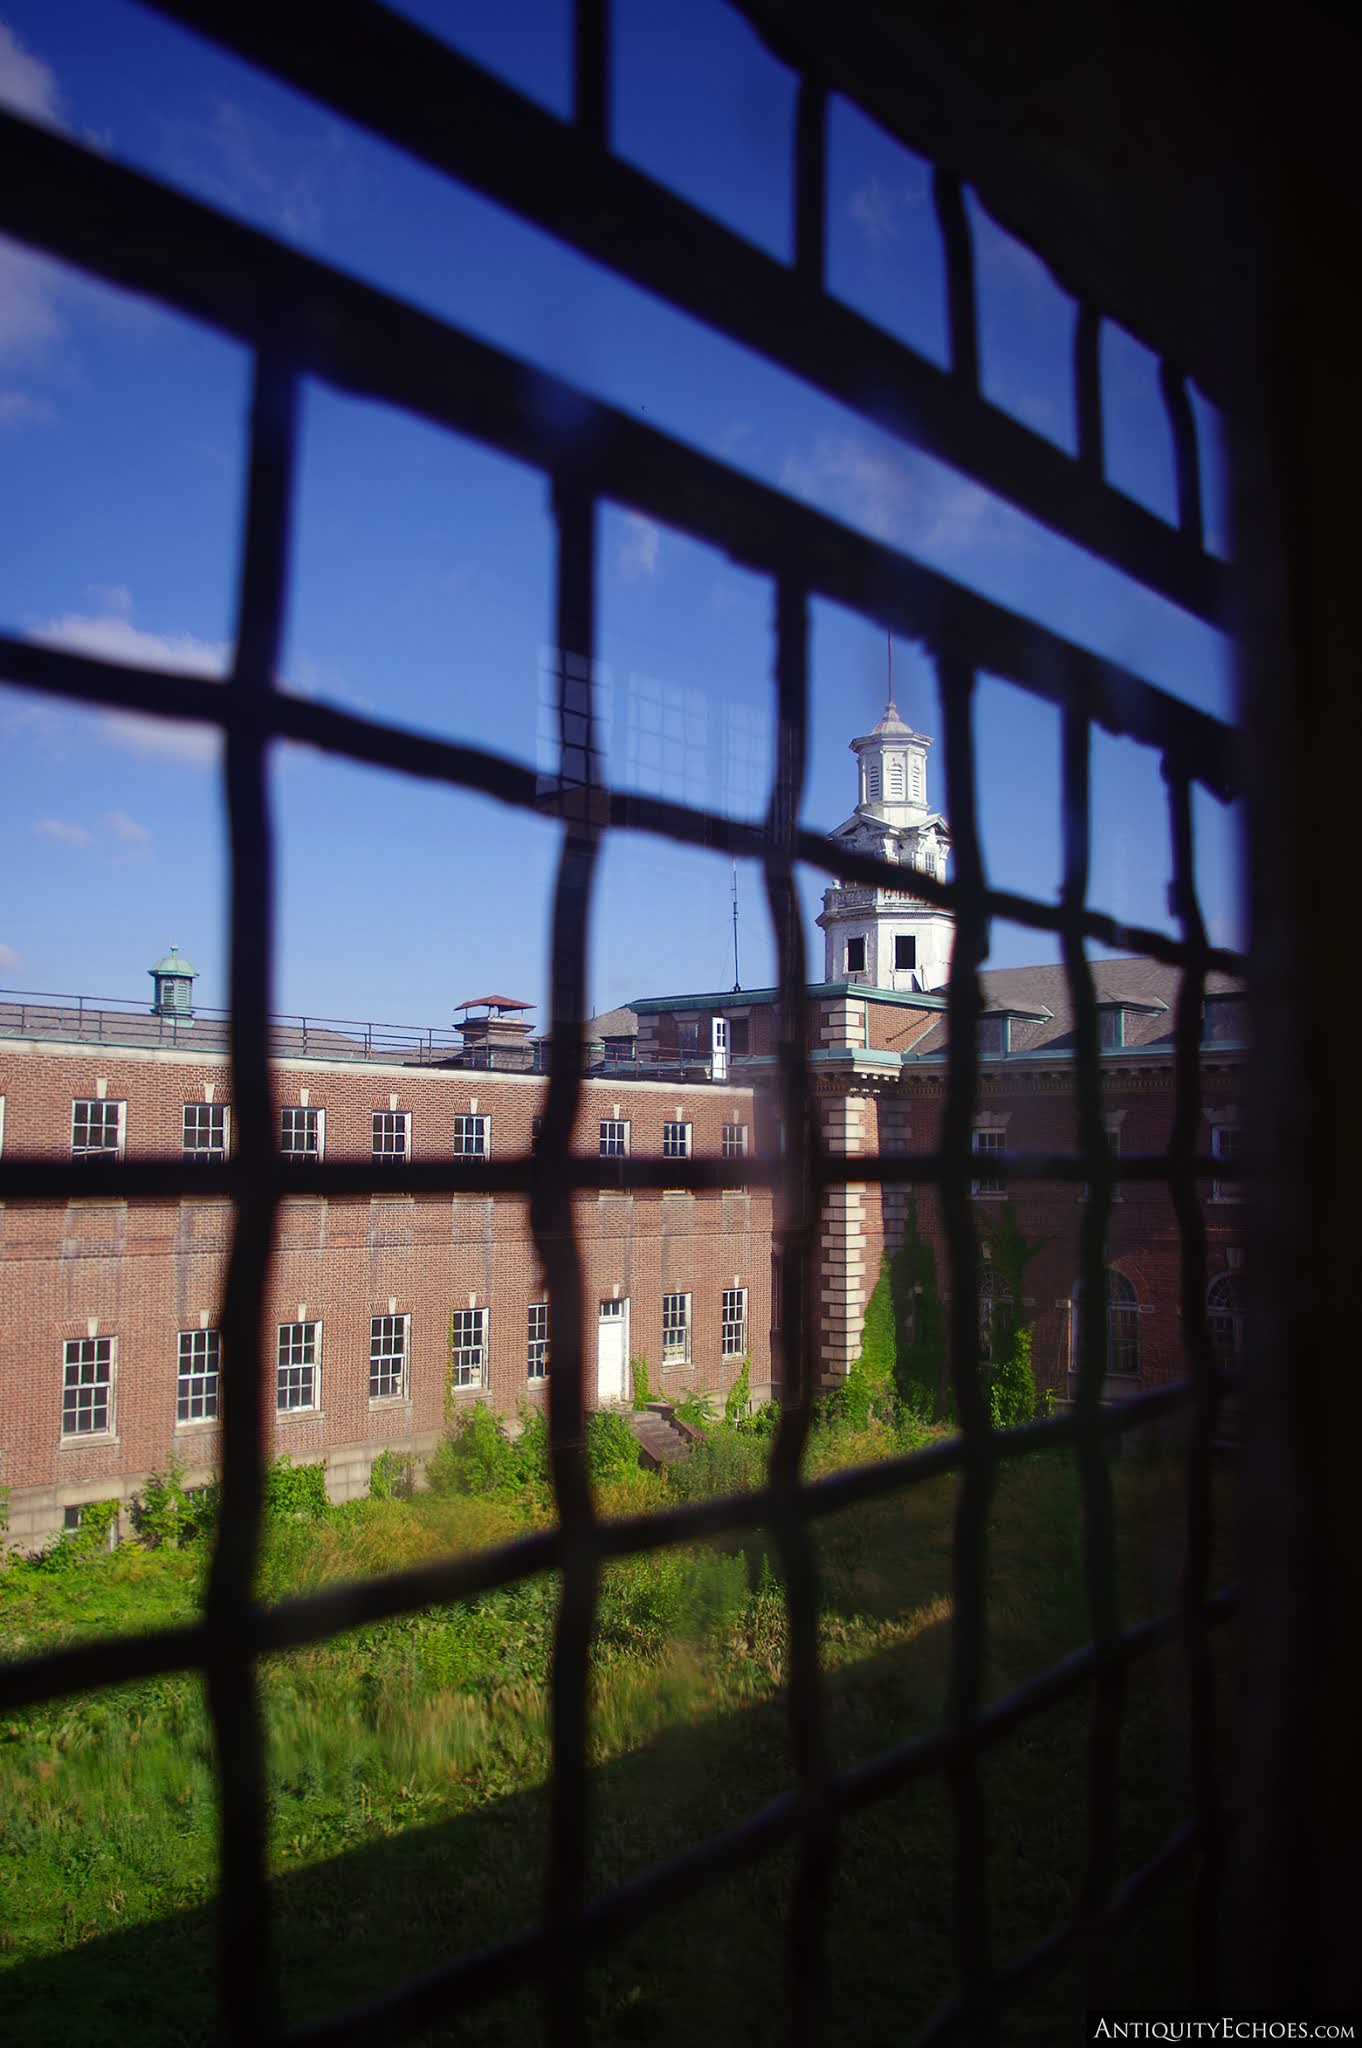 Allentown State Hospital - View from Caged Window